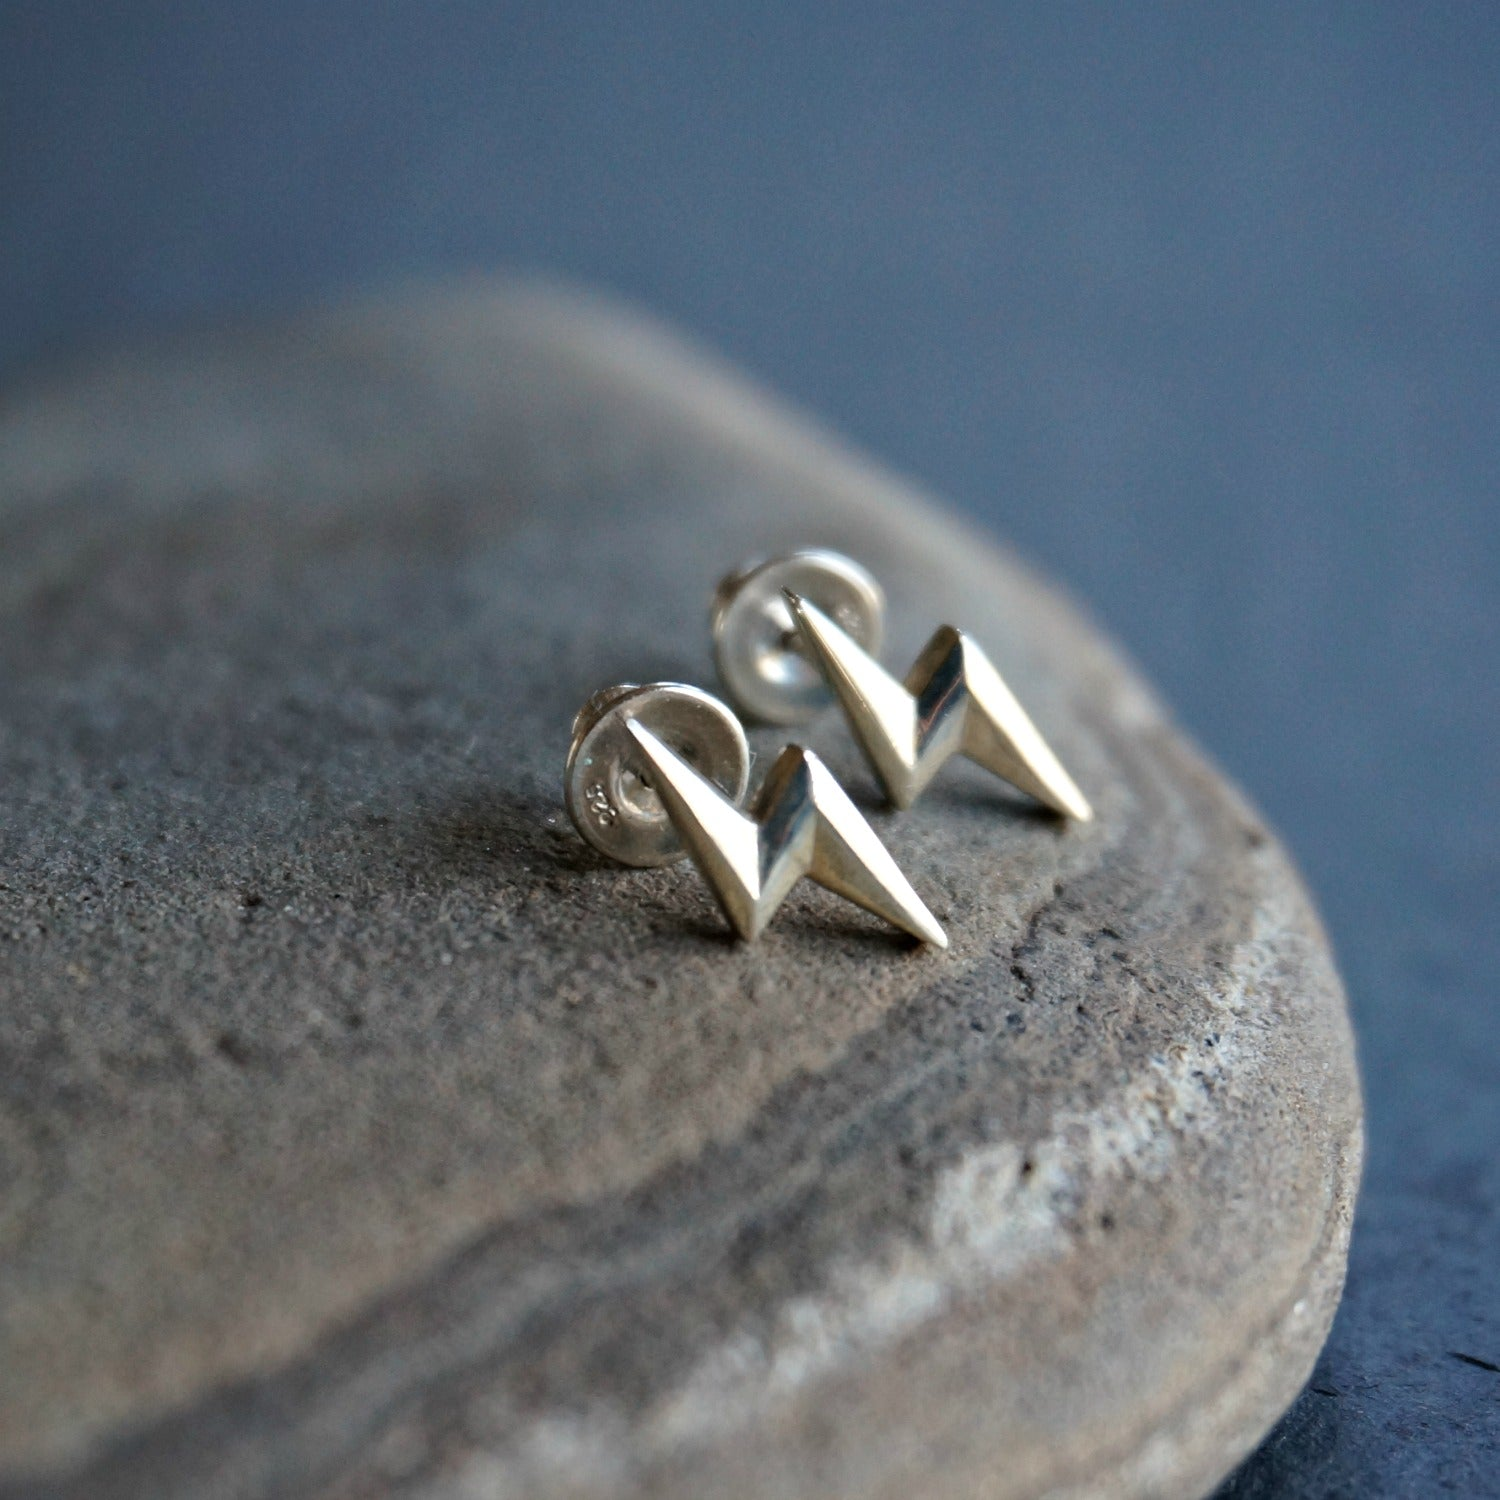 Silver Bolt Stud Earrings - SOWELL JEWELRY